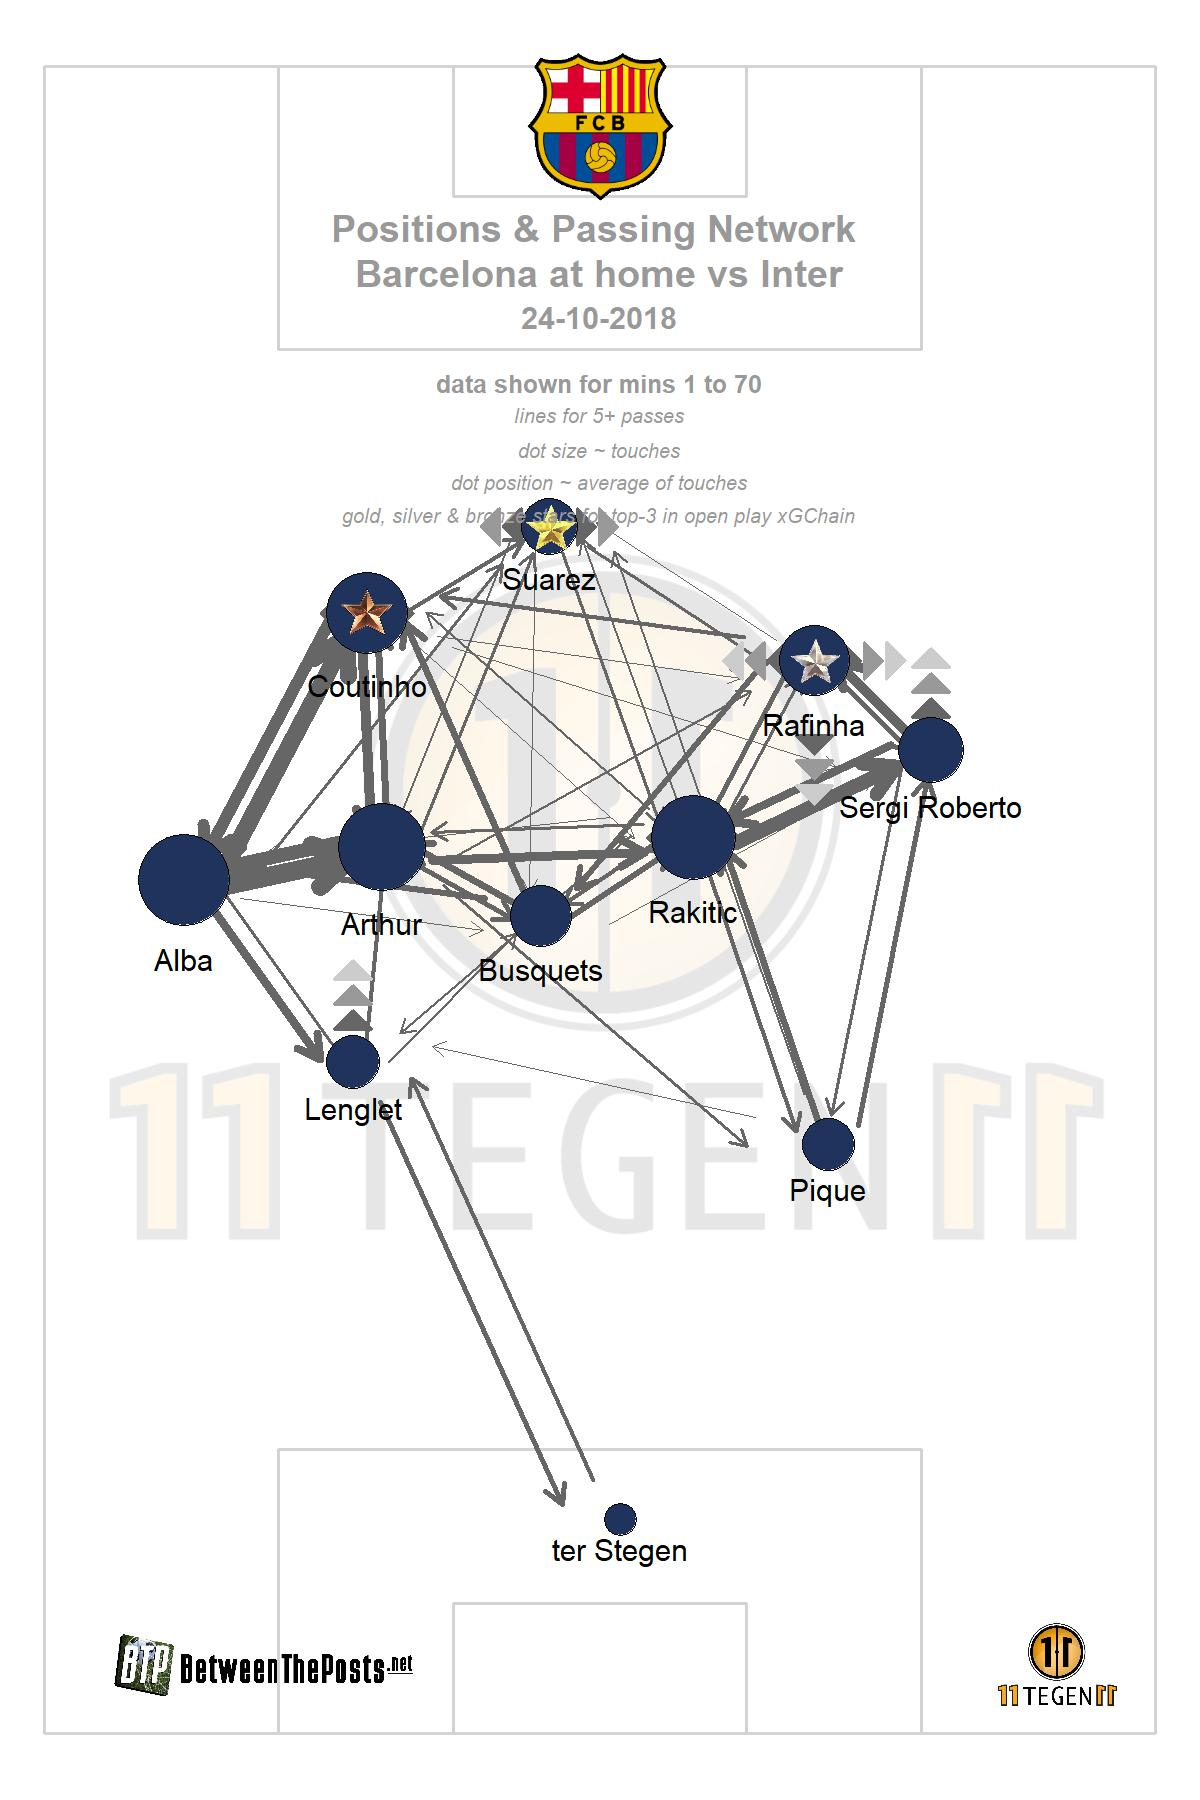 Passmap Barcelona in their match against Inter